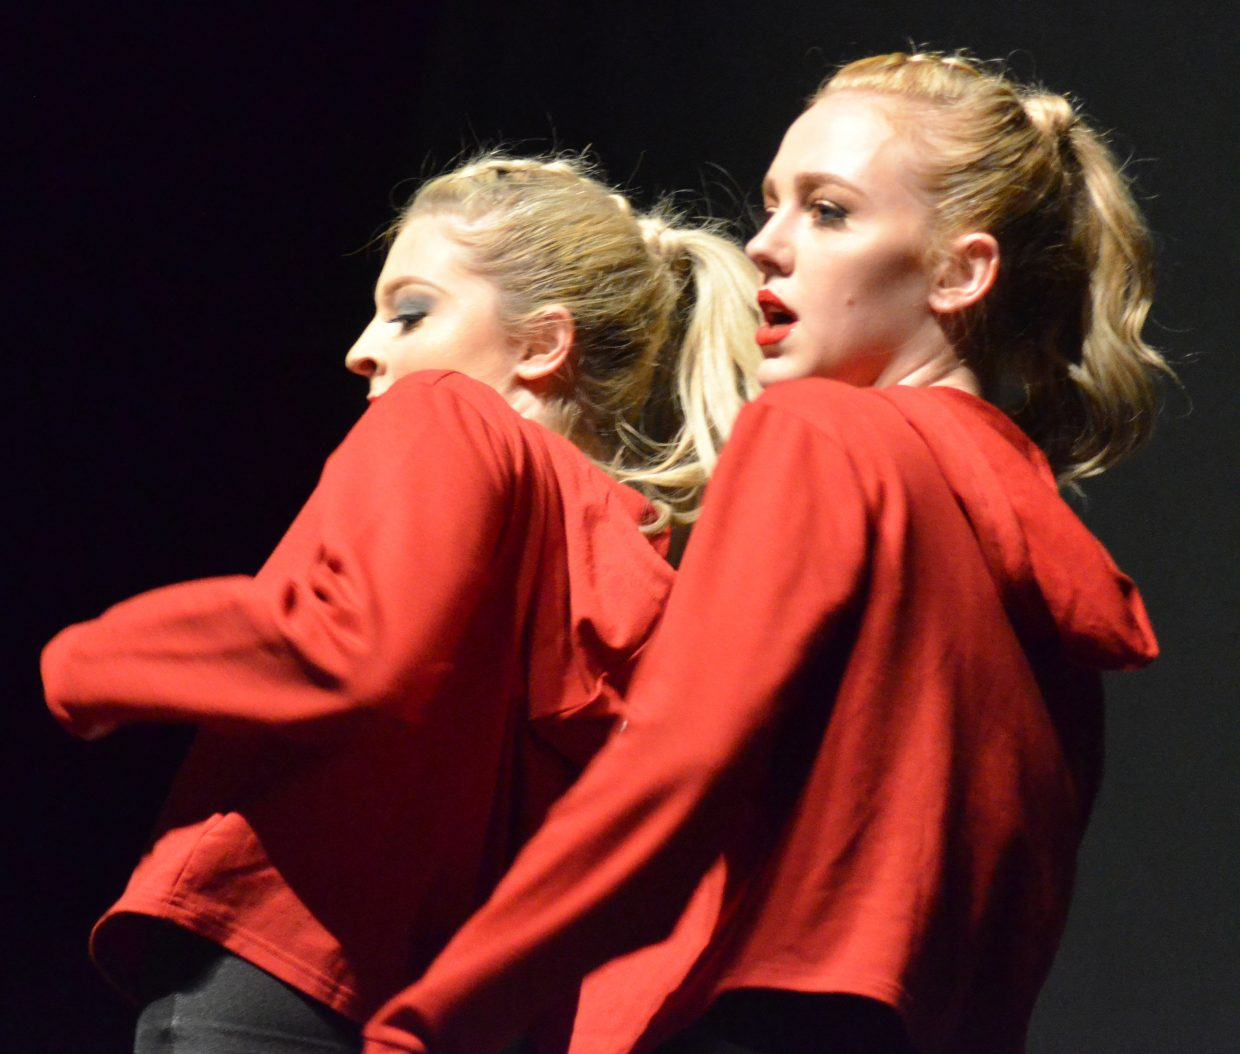 Senior dancers Madison Meckley and Abbie Told perform to Missy Elliot's